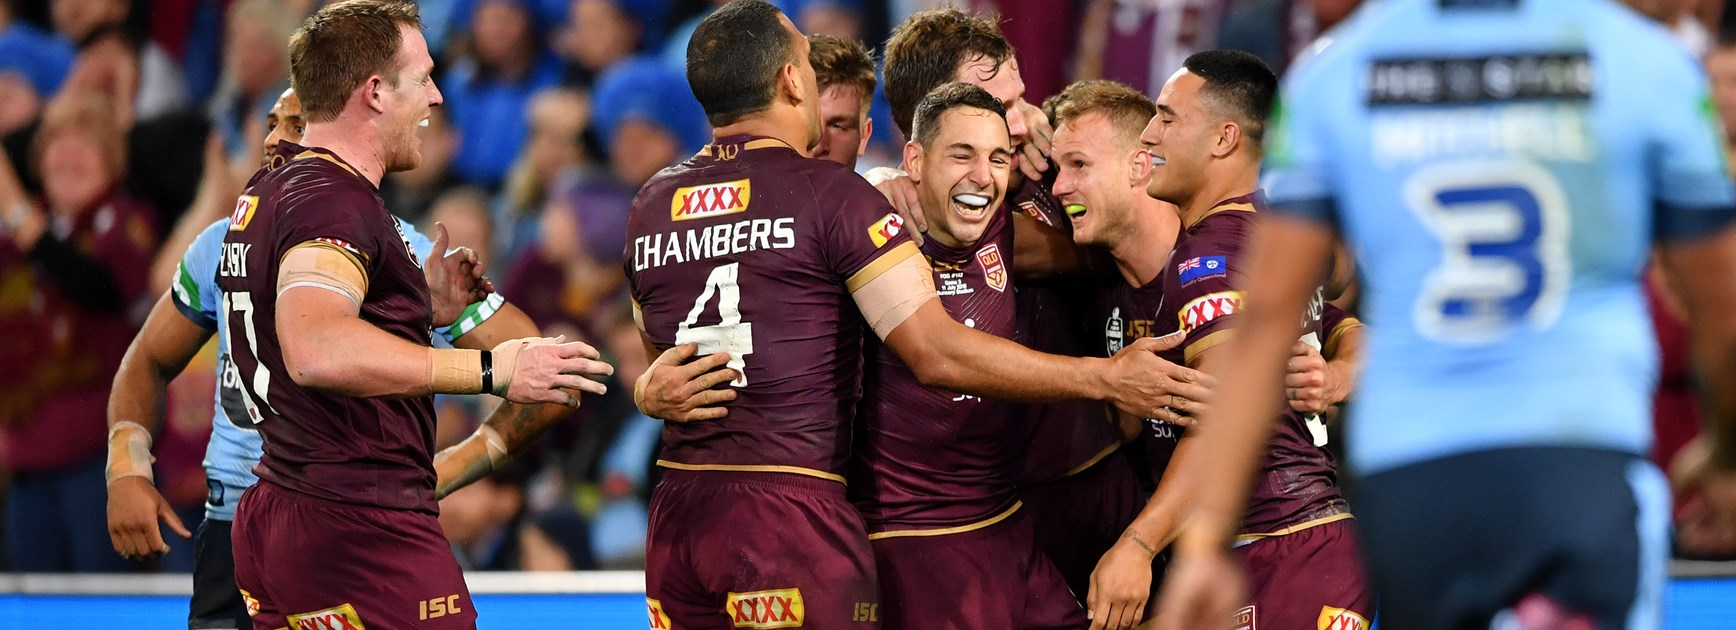 Queensland celebrate a try against NSW.